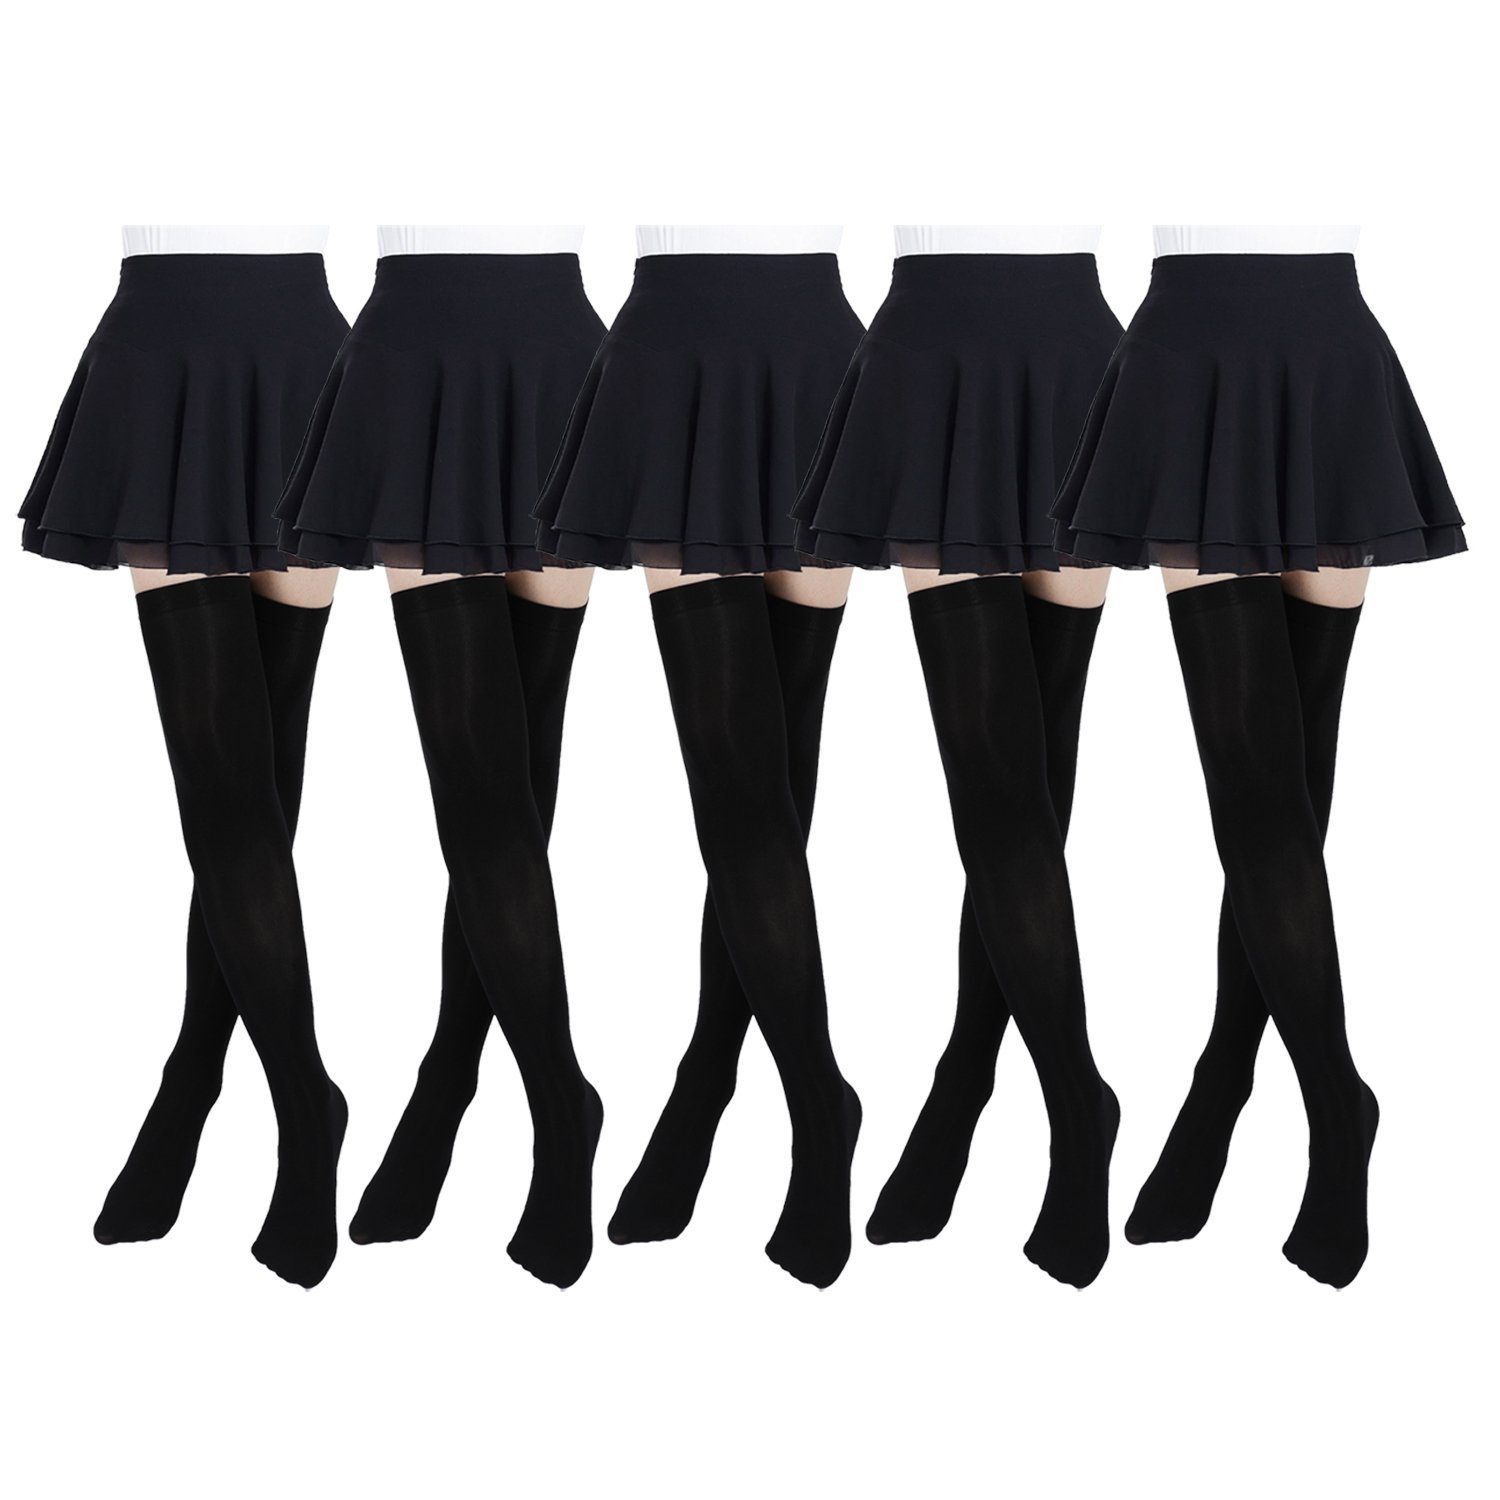 bafdd7d0774 Never wear pantyhose again with thesehigh-quality thigh-high stockings. Top  quality socks are smooth to touch and have high elasticity